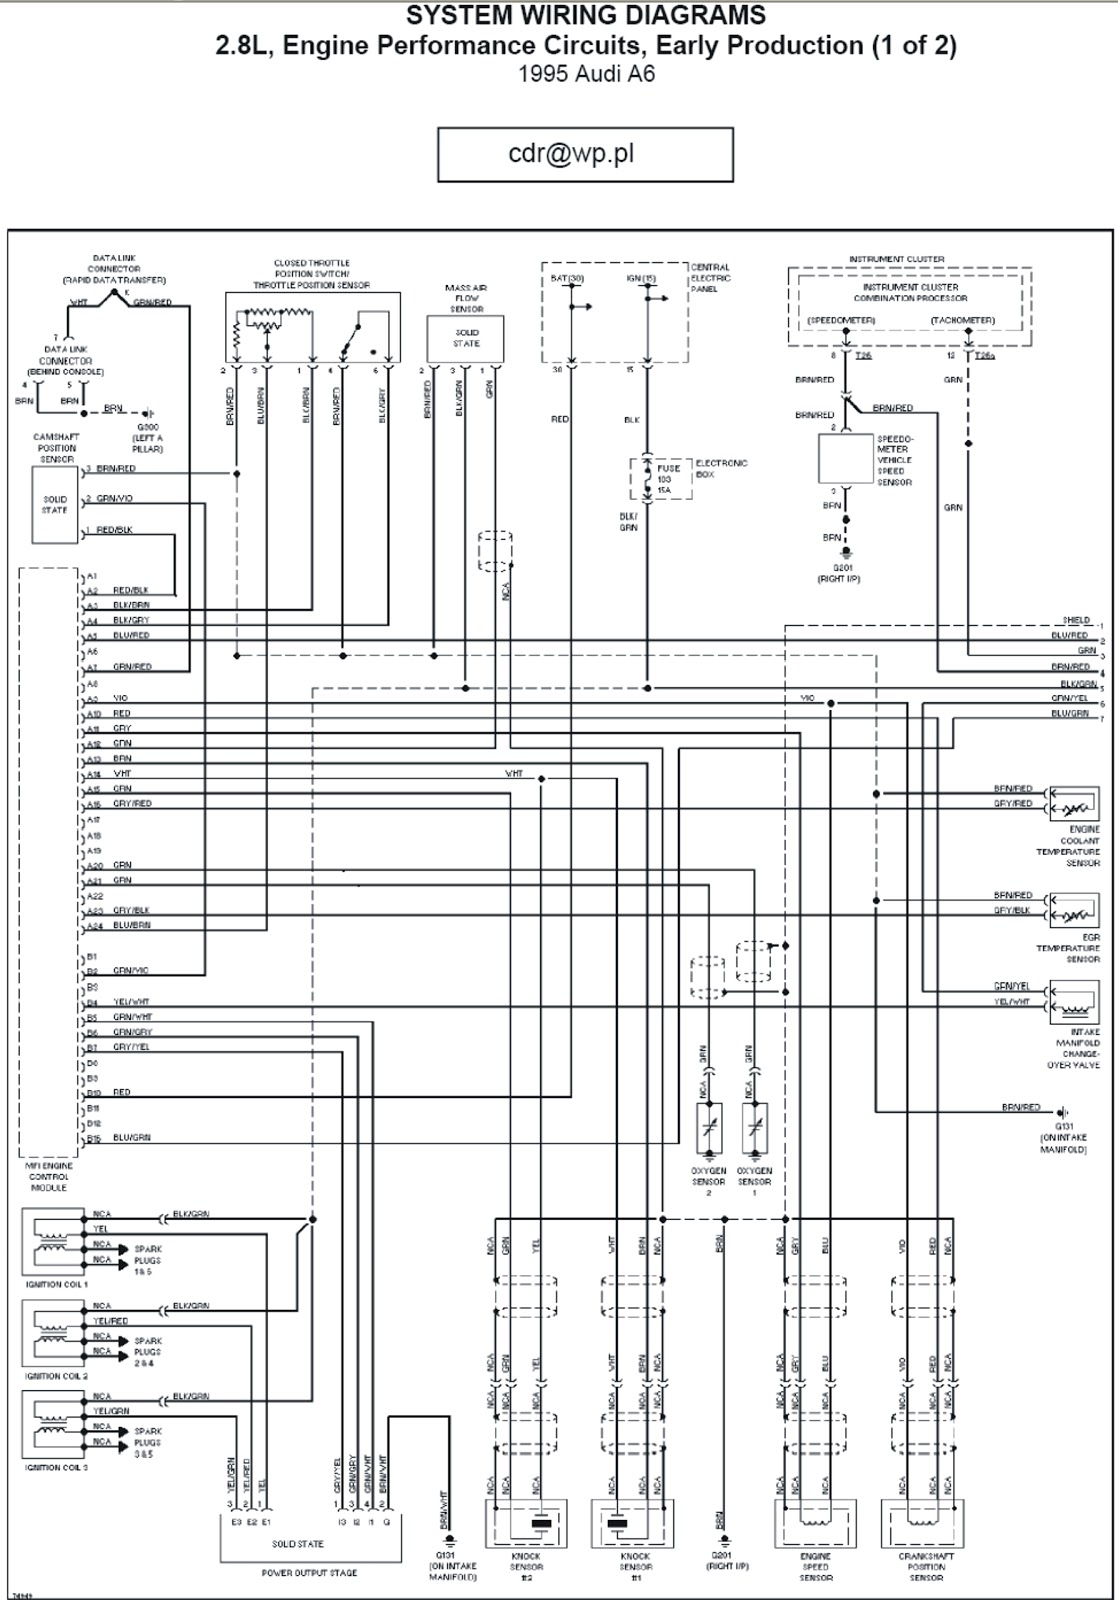 audi c5 wiring diagram diagram data schemaaudi wiring diagram a6 wiring diagram forward audi a6 c5 [ 1118 x 1600 Pixel ]